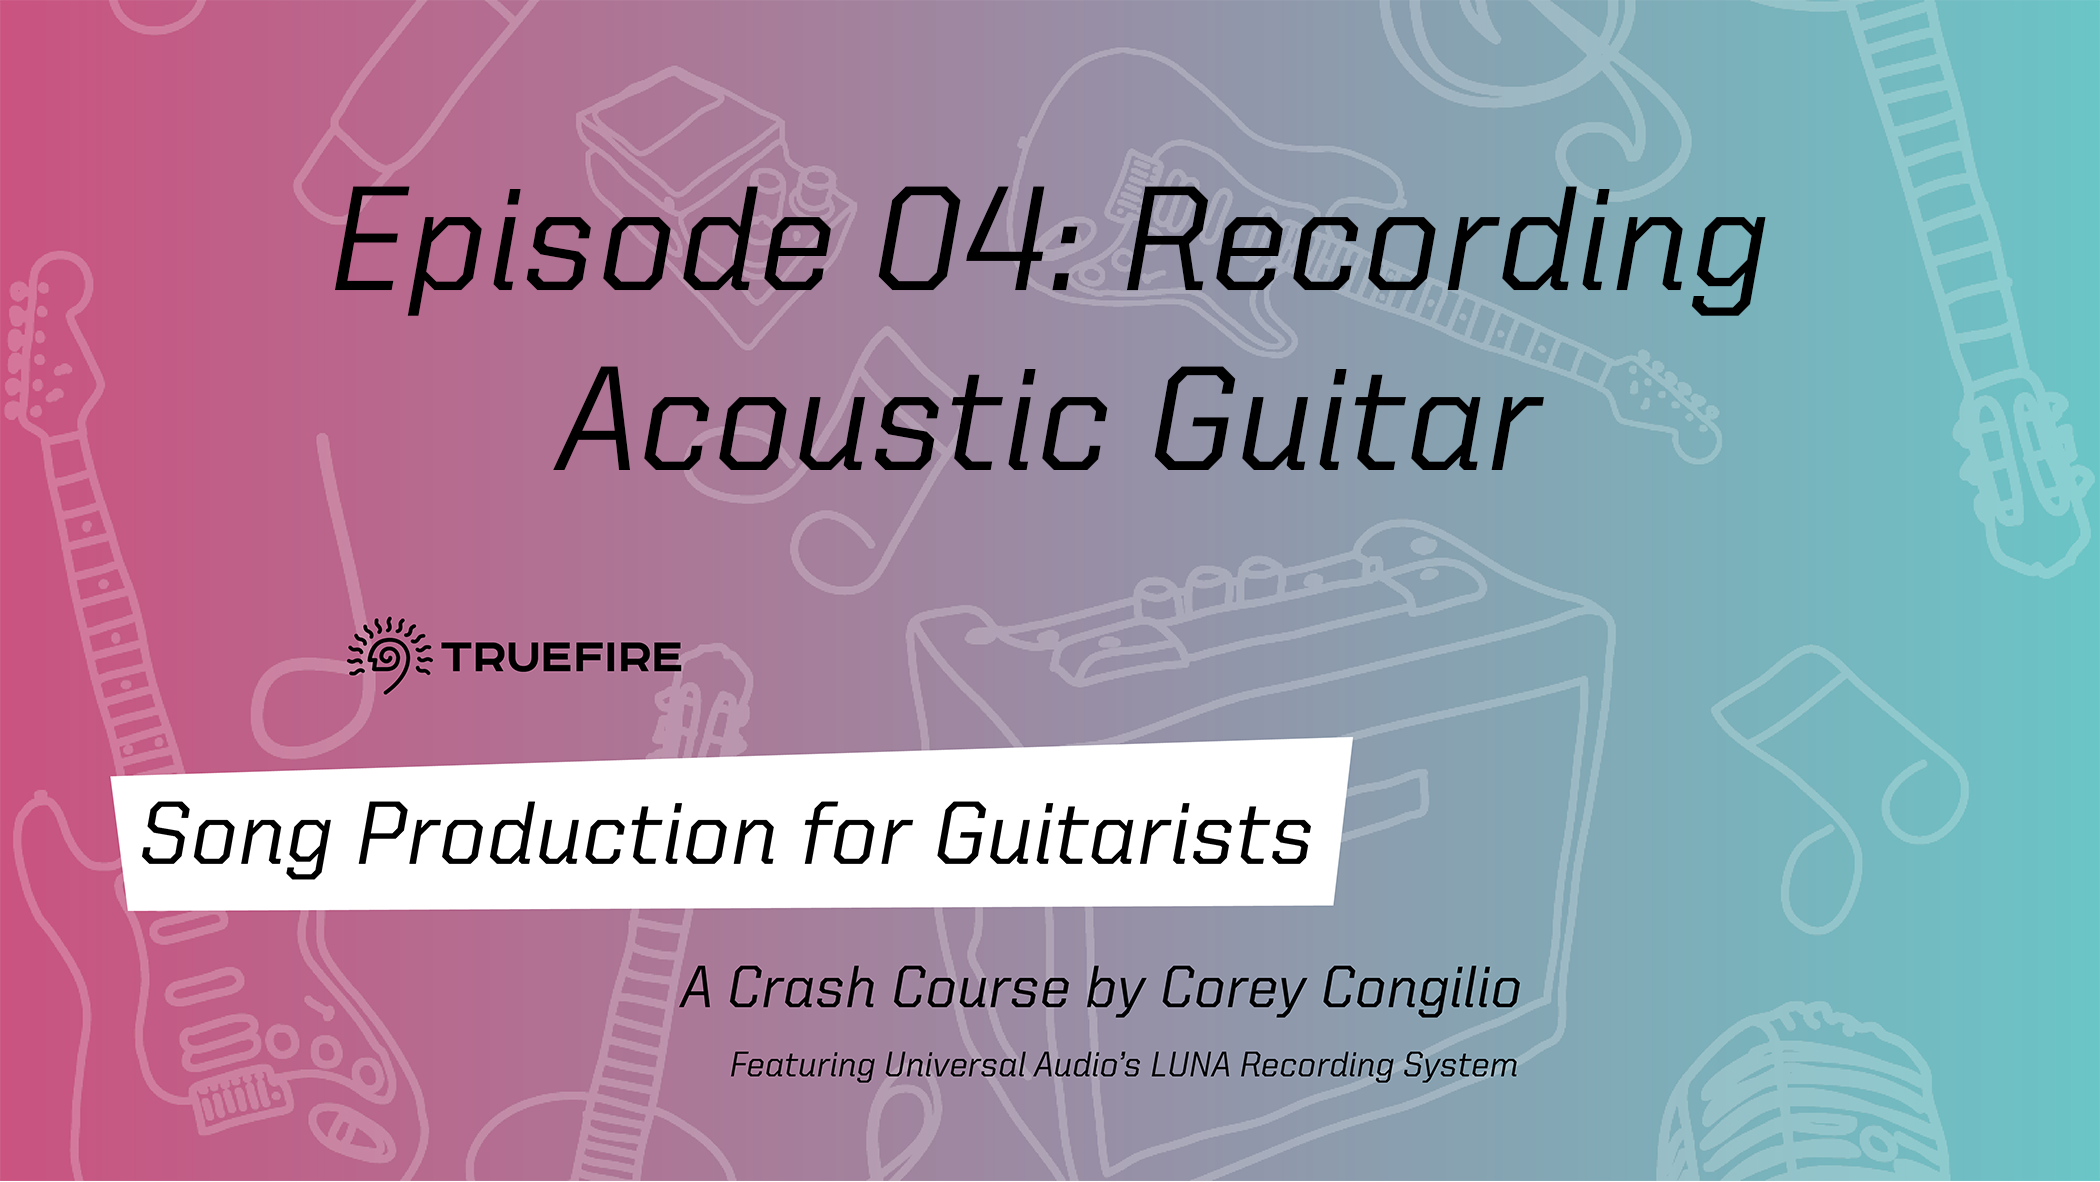 Song Production for Guitarists 4